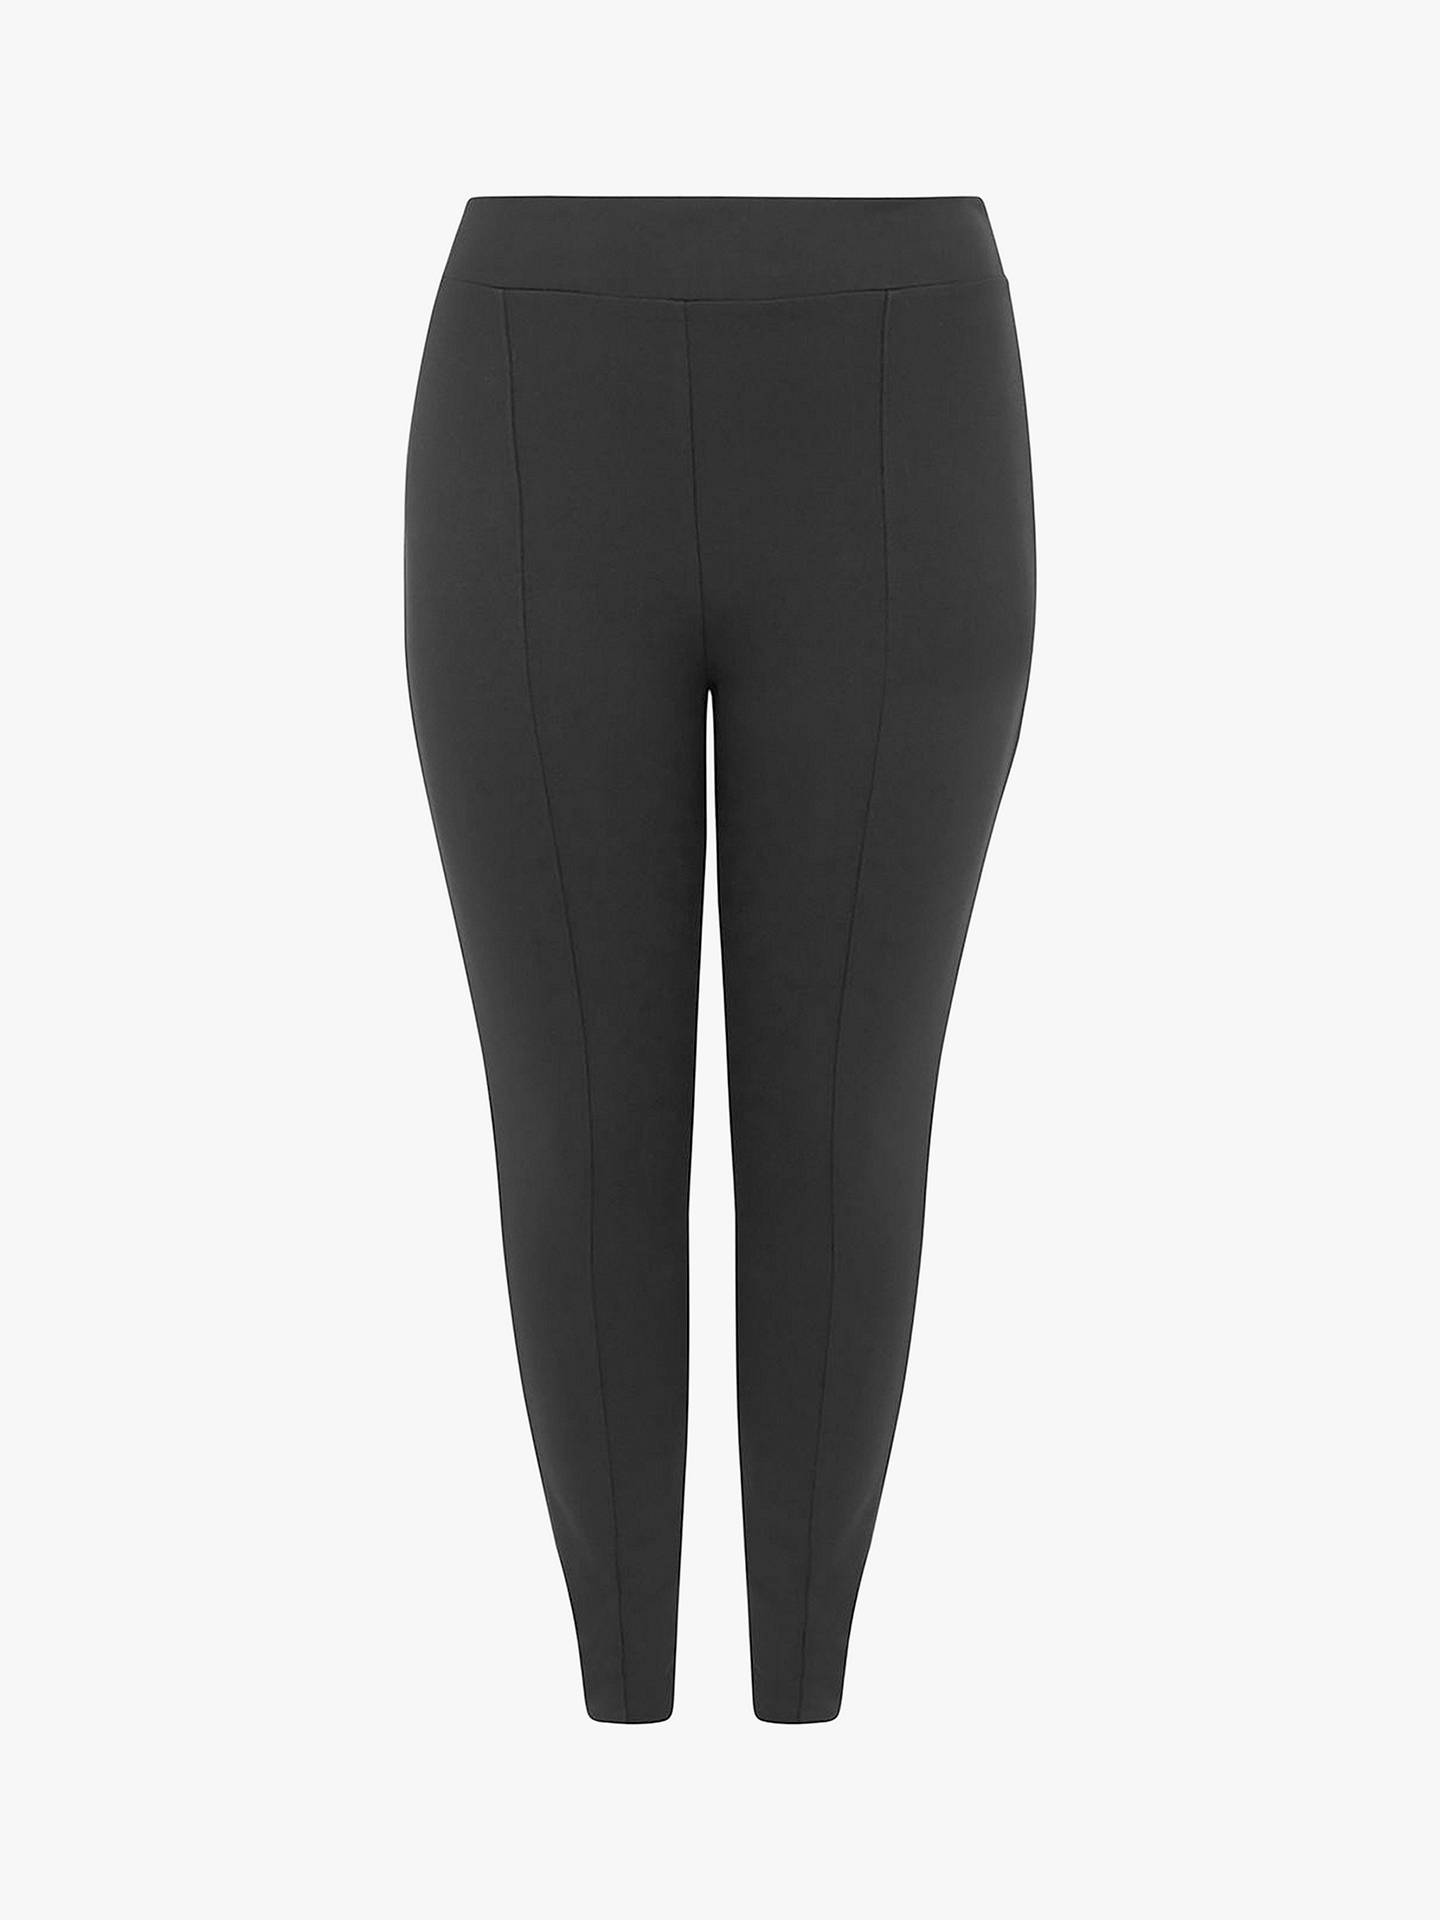 BuyOasis Curve High Waisted Leggings, Black, XL Online at johnlewis.com